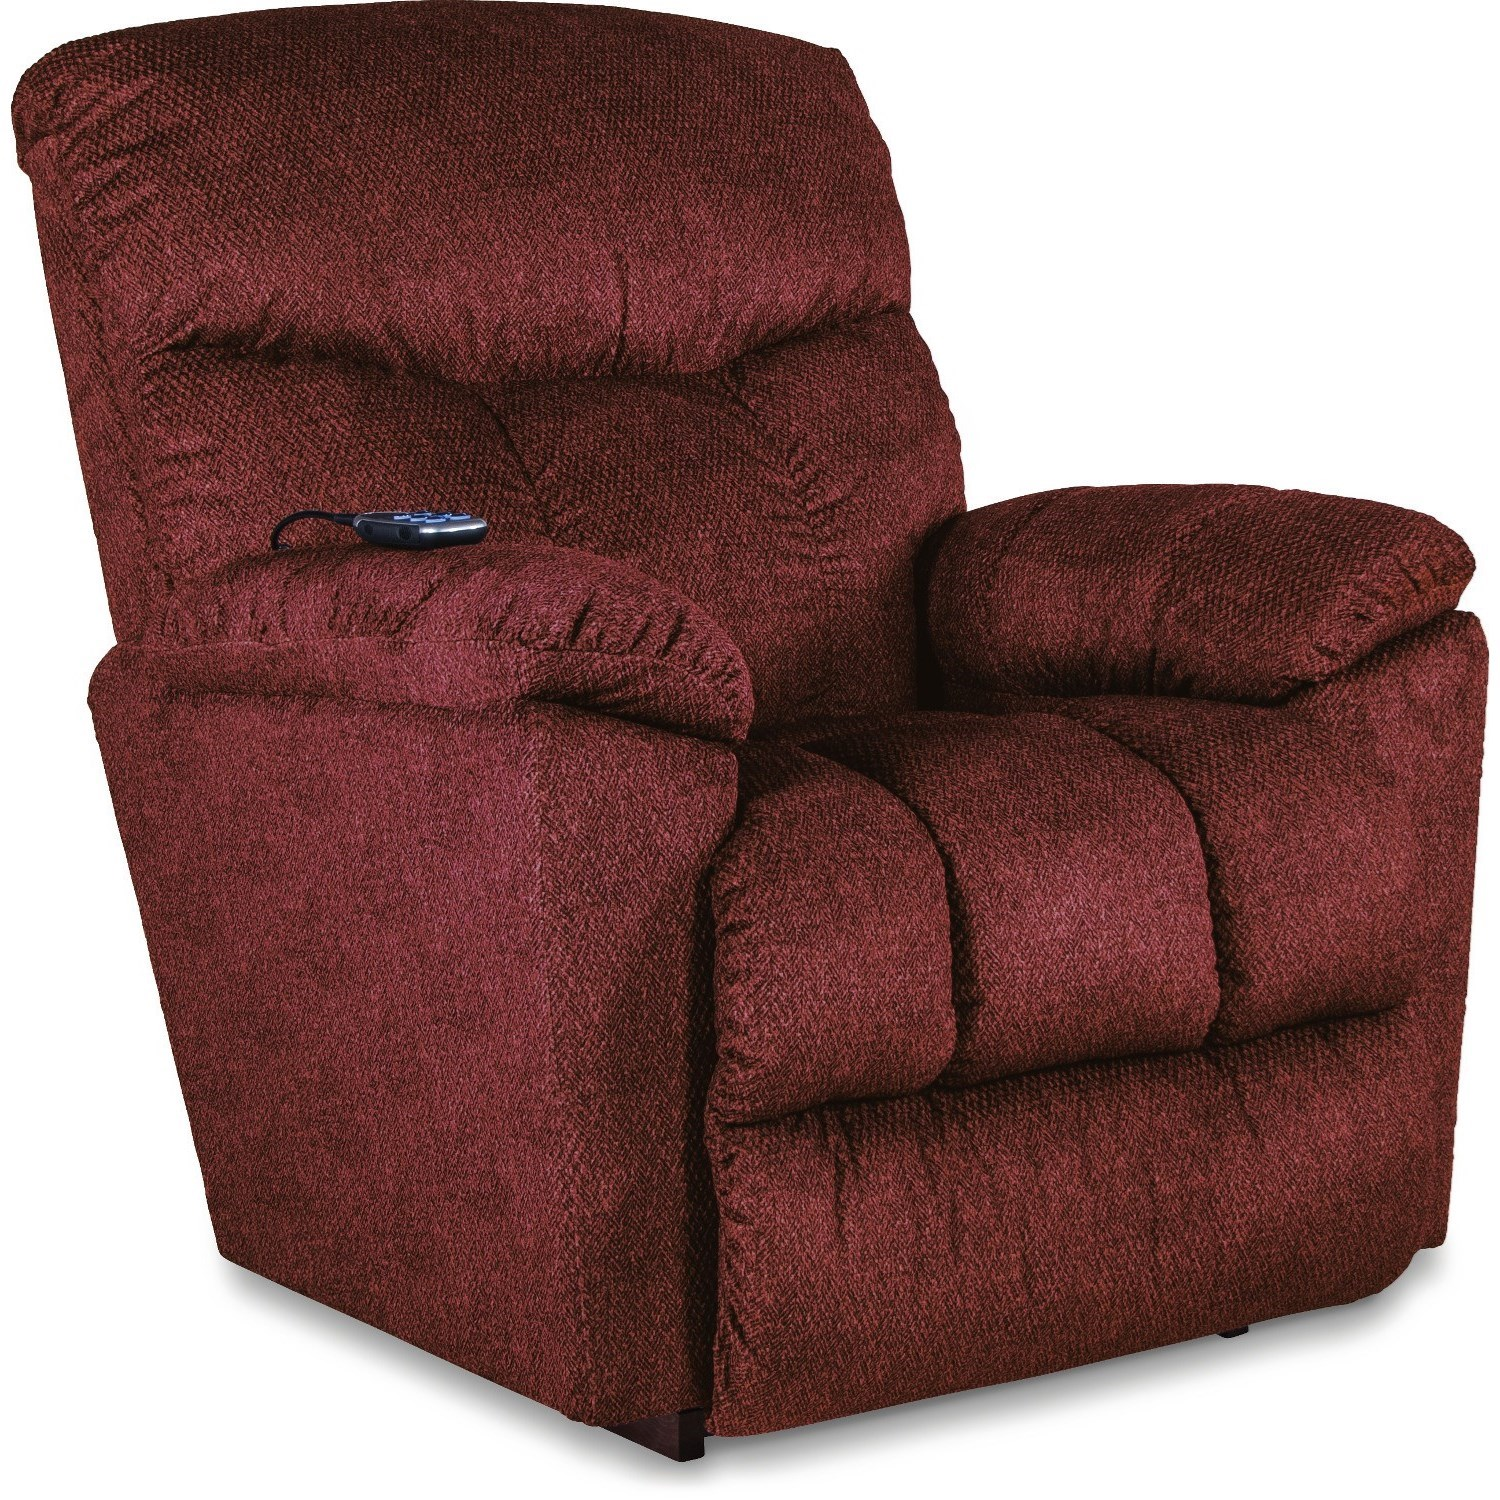 Morrison Power Wall Recliner w/ Headrest & Lumbar by La-Z-Boy at VanDrie Home Furnishings